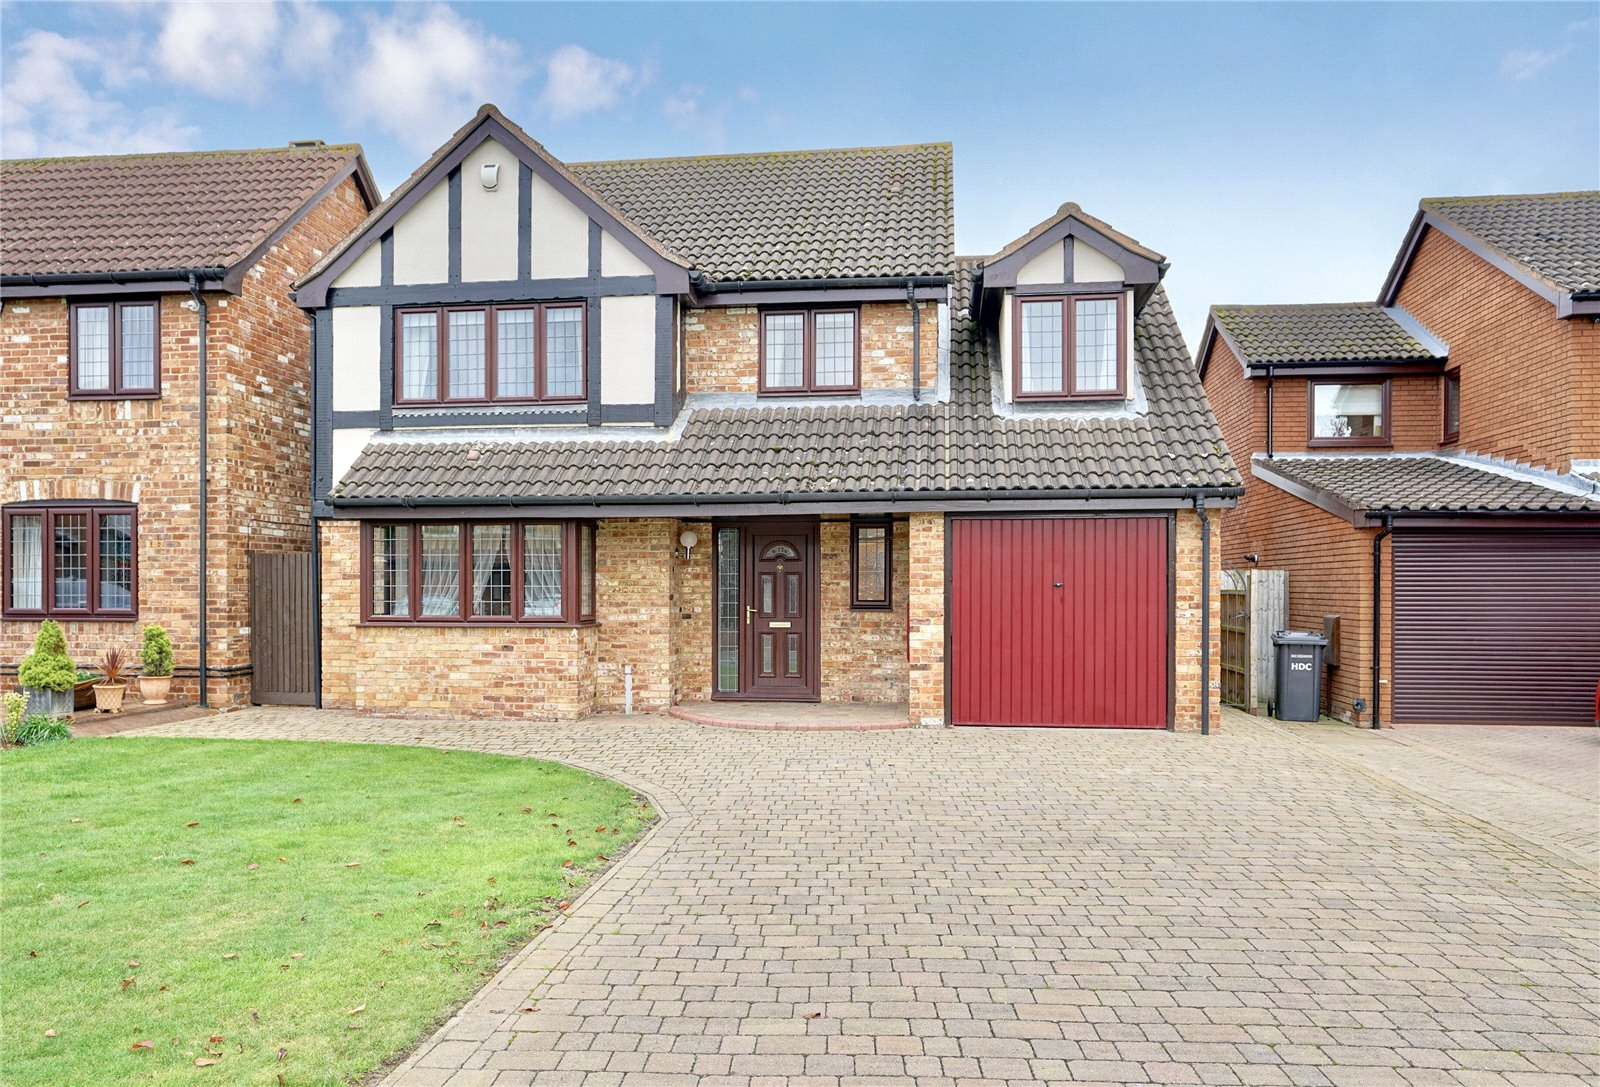 4 bed house for sale in Eaton Ford, Burwell Road, PE19 7QQ, PE19